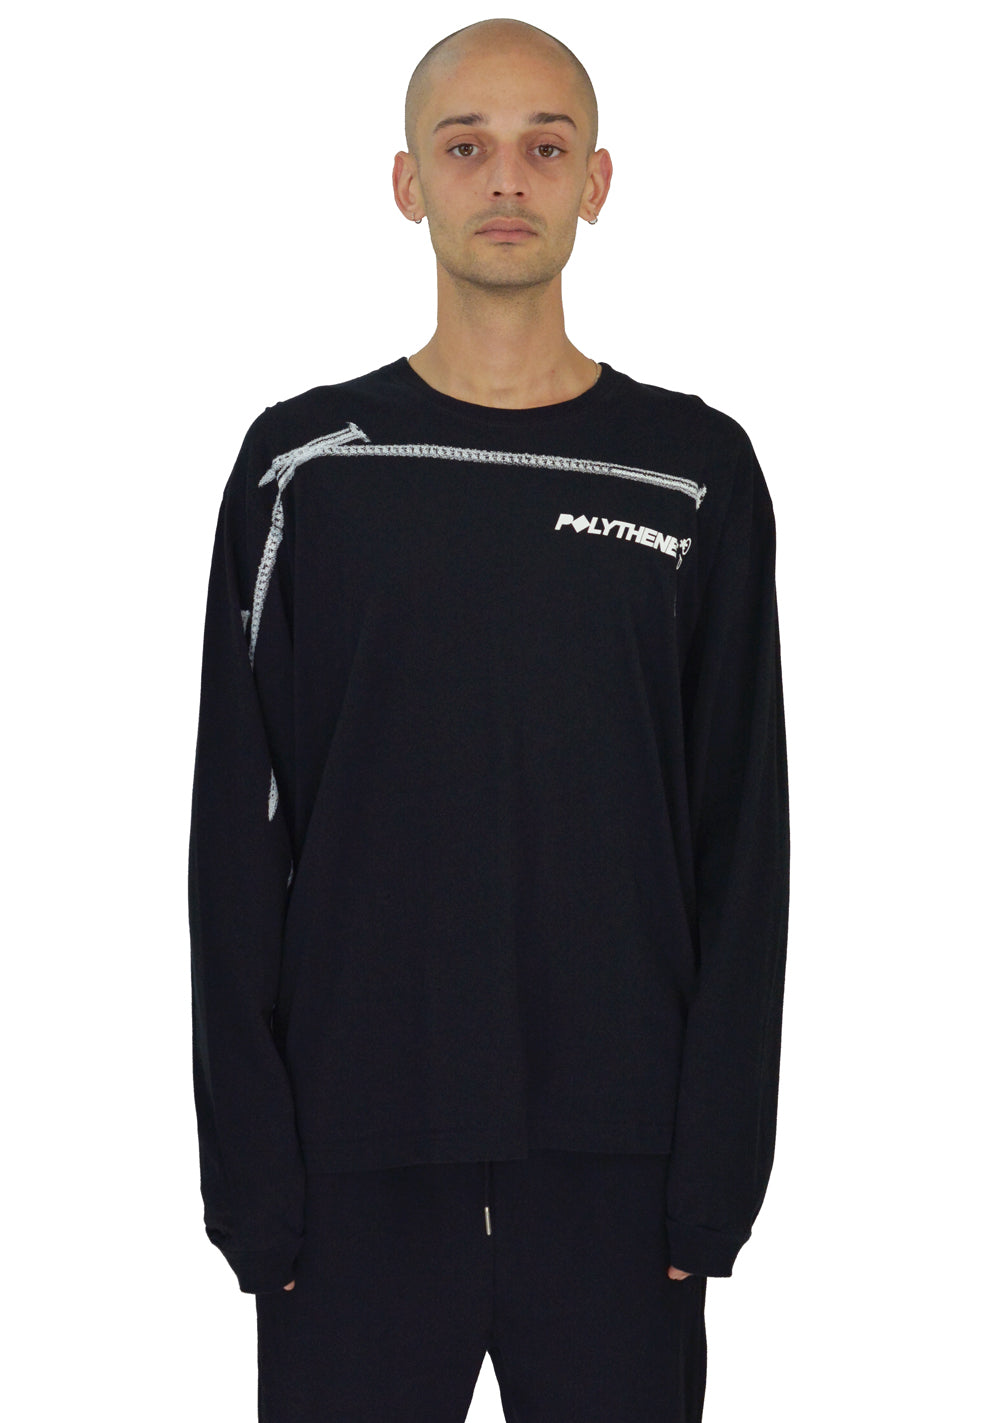 POLYTHENE* OPTICS POLS03WHTB LONG SLEEVE T-SHIRT BLACK-DOOSHABURI Online Shop